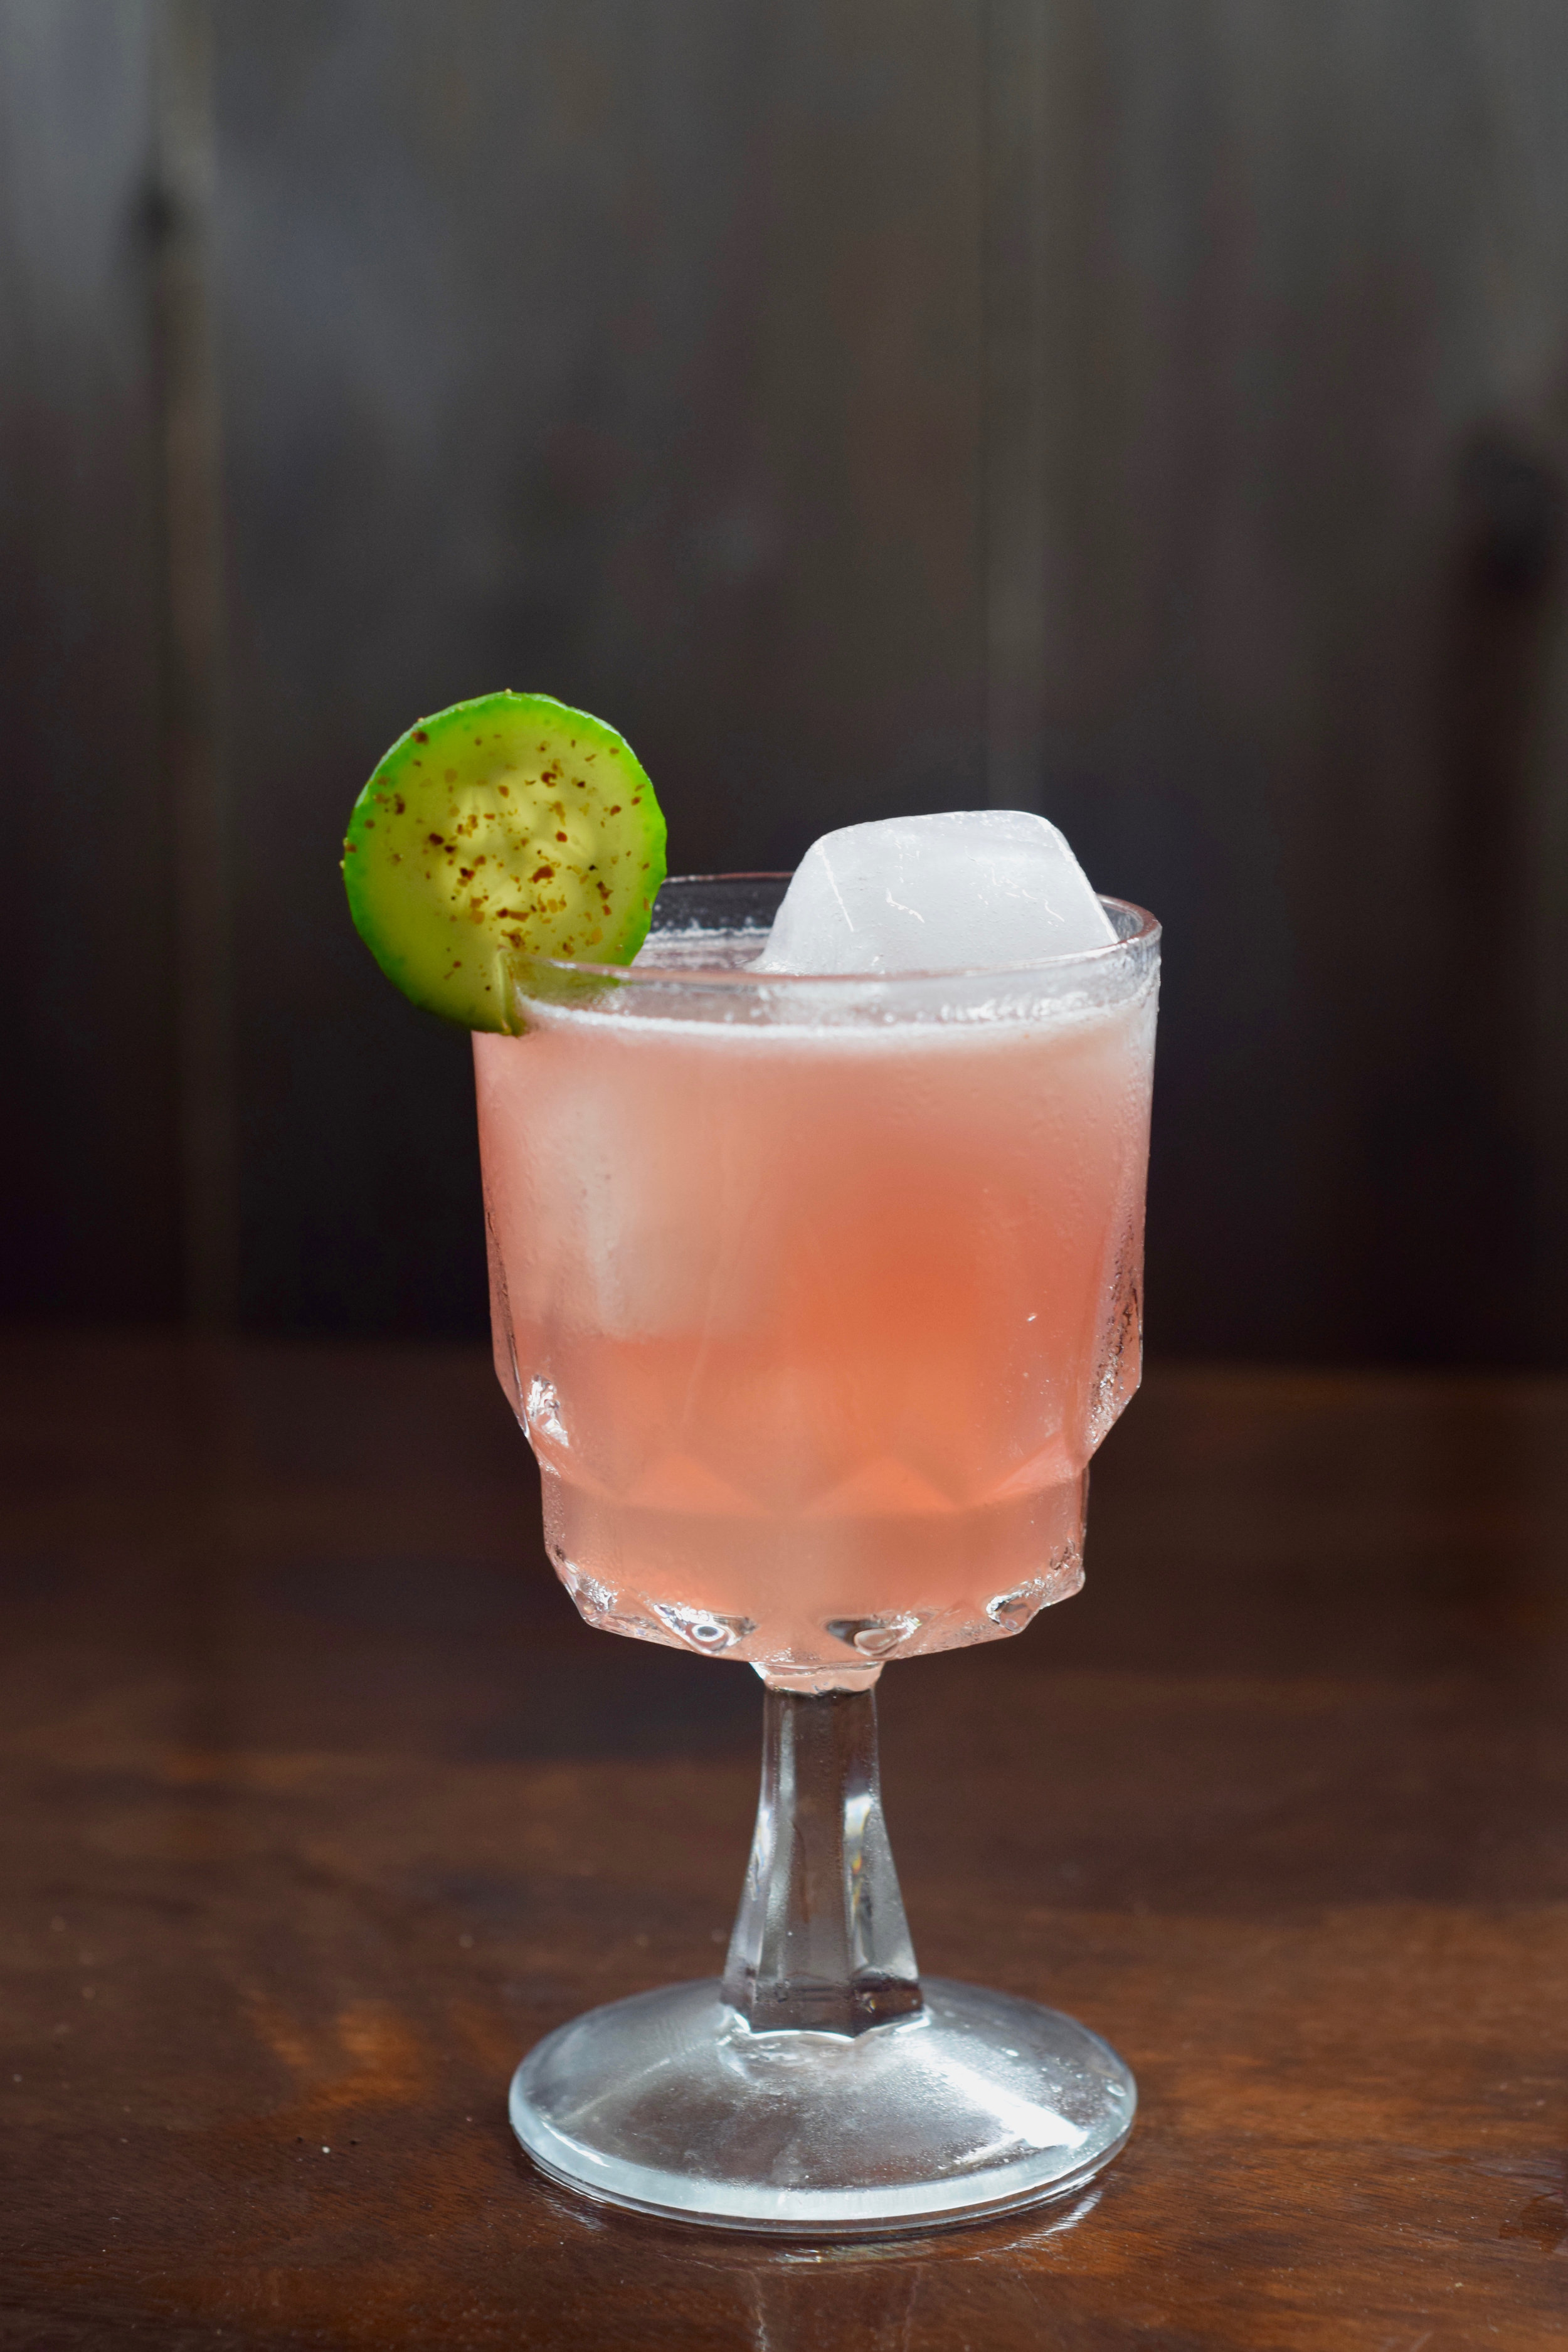 HOT FLASH - 1.5 oz gin1/2 oz elderflower liqueur3/4 oz nostrum strawberry hibiscus jalapeno shrub3/4 oz fresh lemon juice4 cucumber slicesMuddle cucumber in a shaker. Add other ingredients and ice. Shake and double strain.